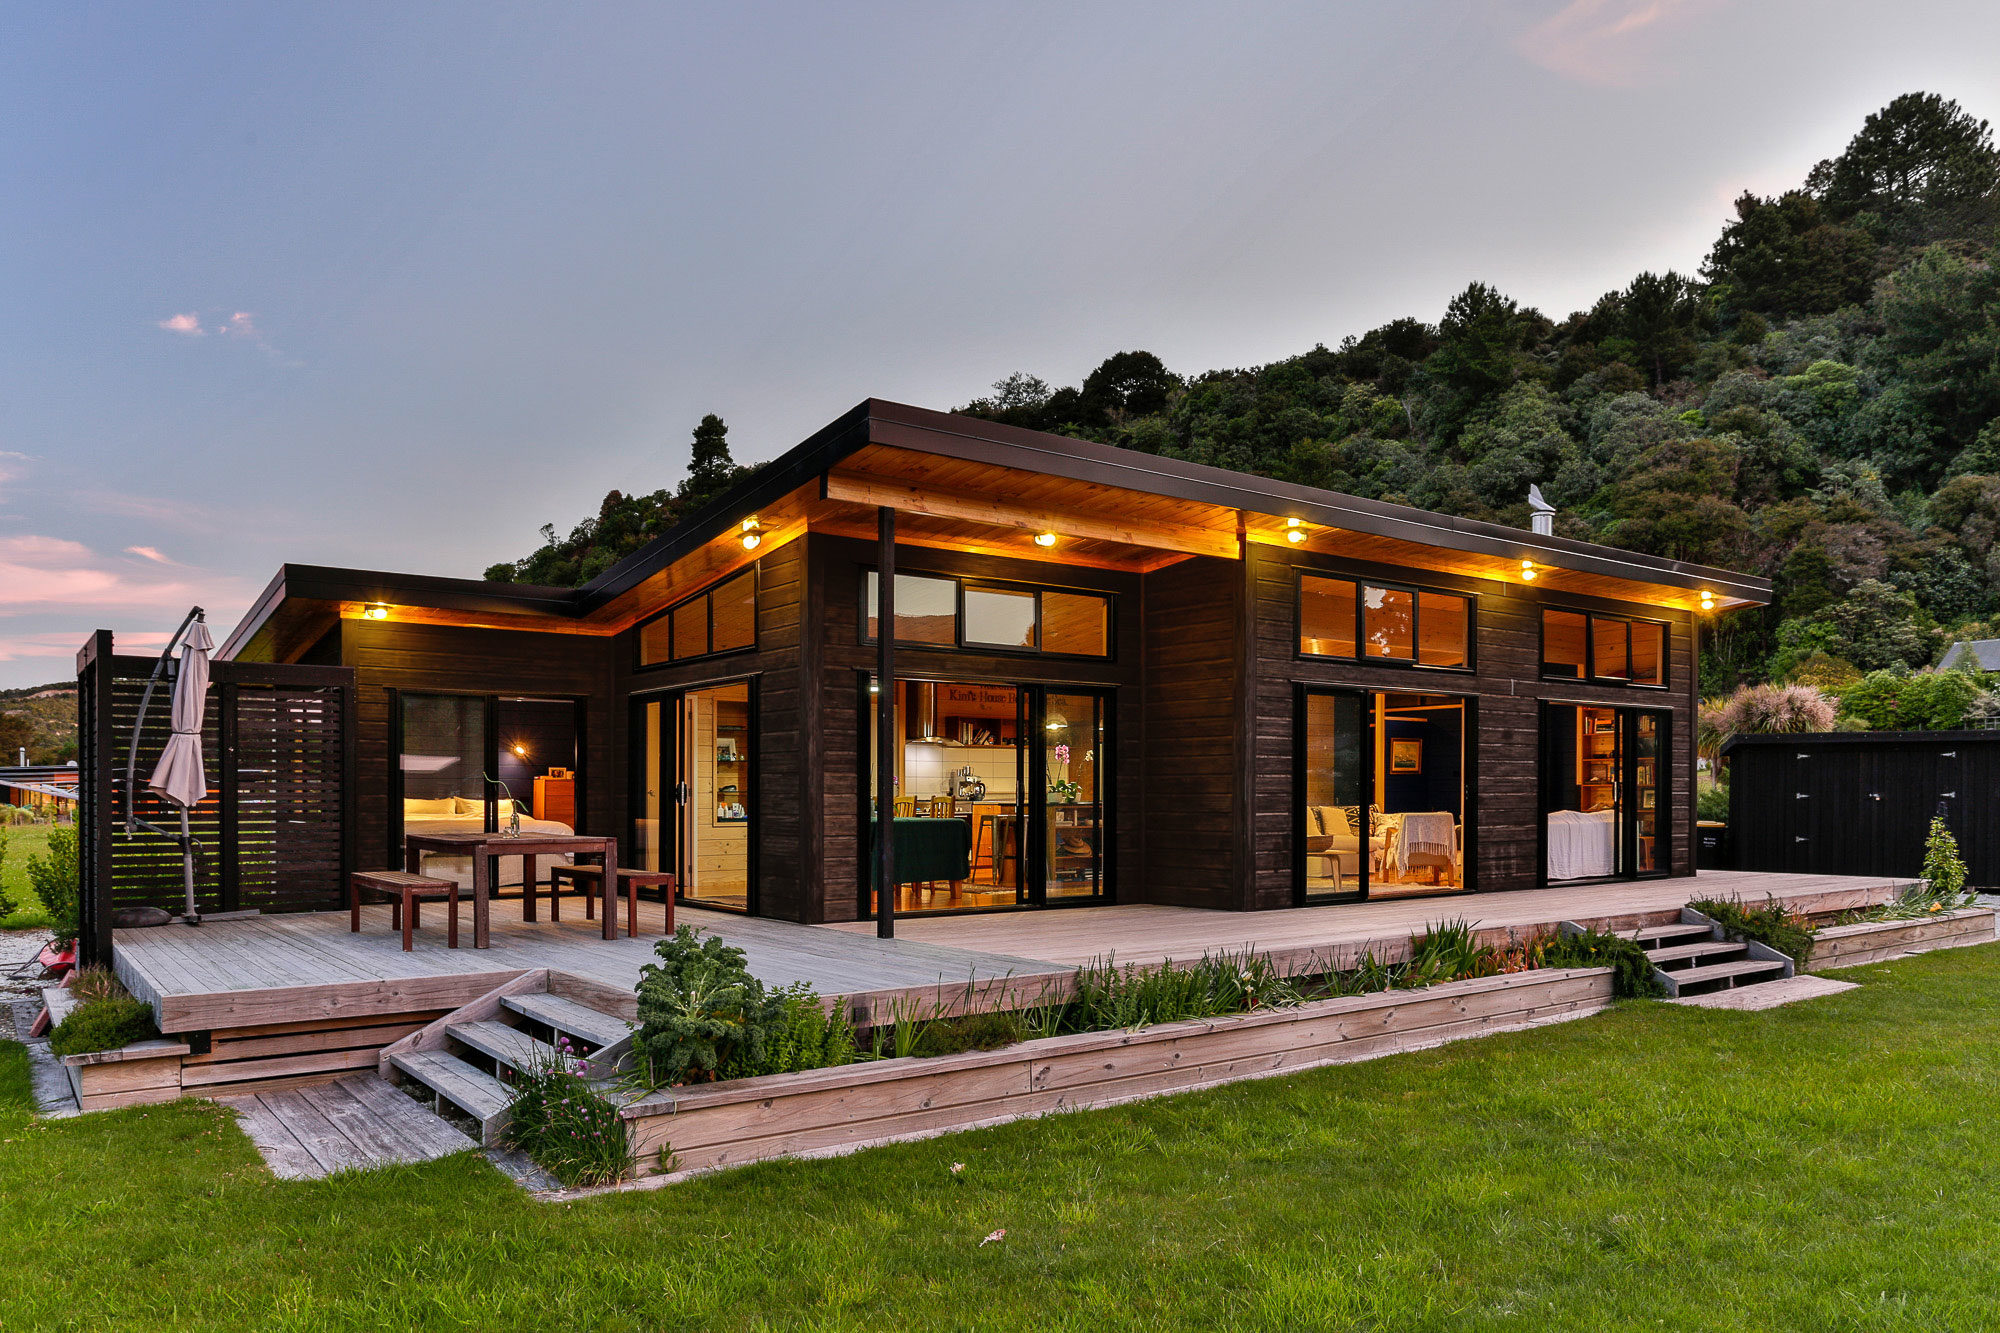 Lockwood holiday home with dark oil stain on VG pine exterior cladding